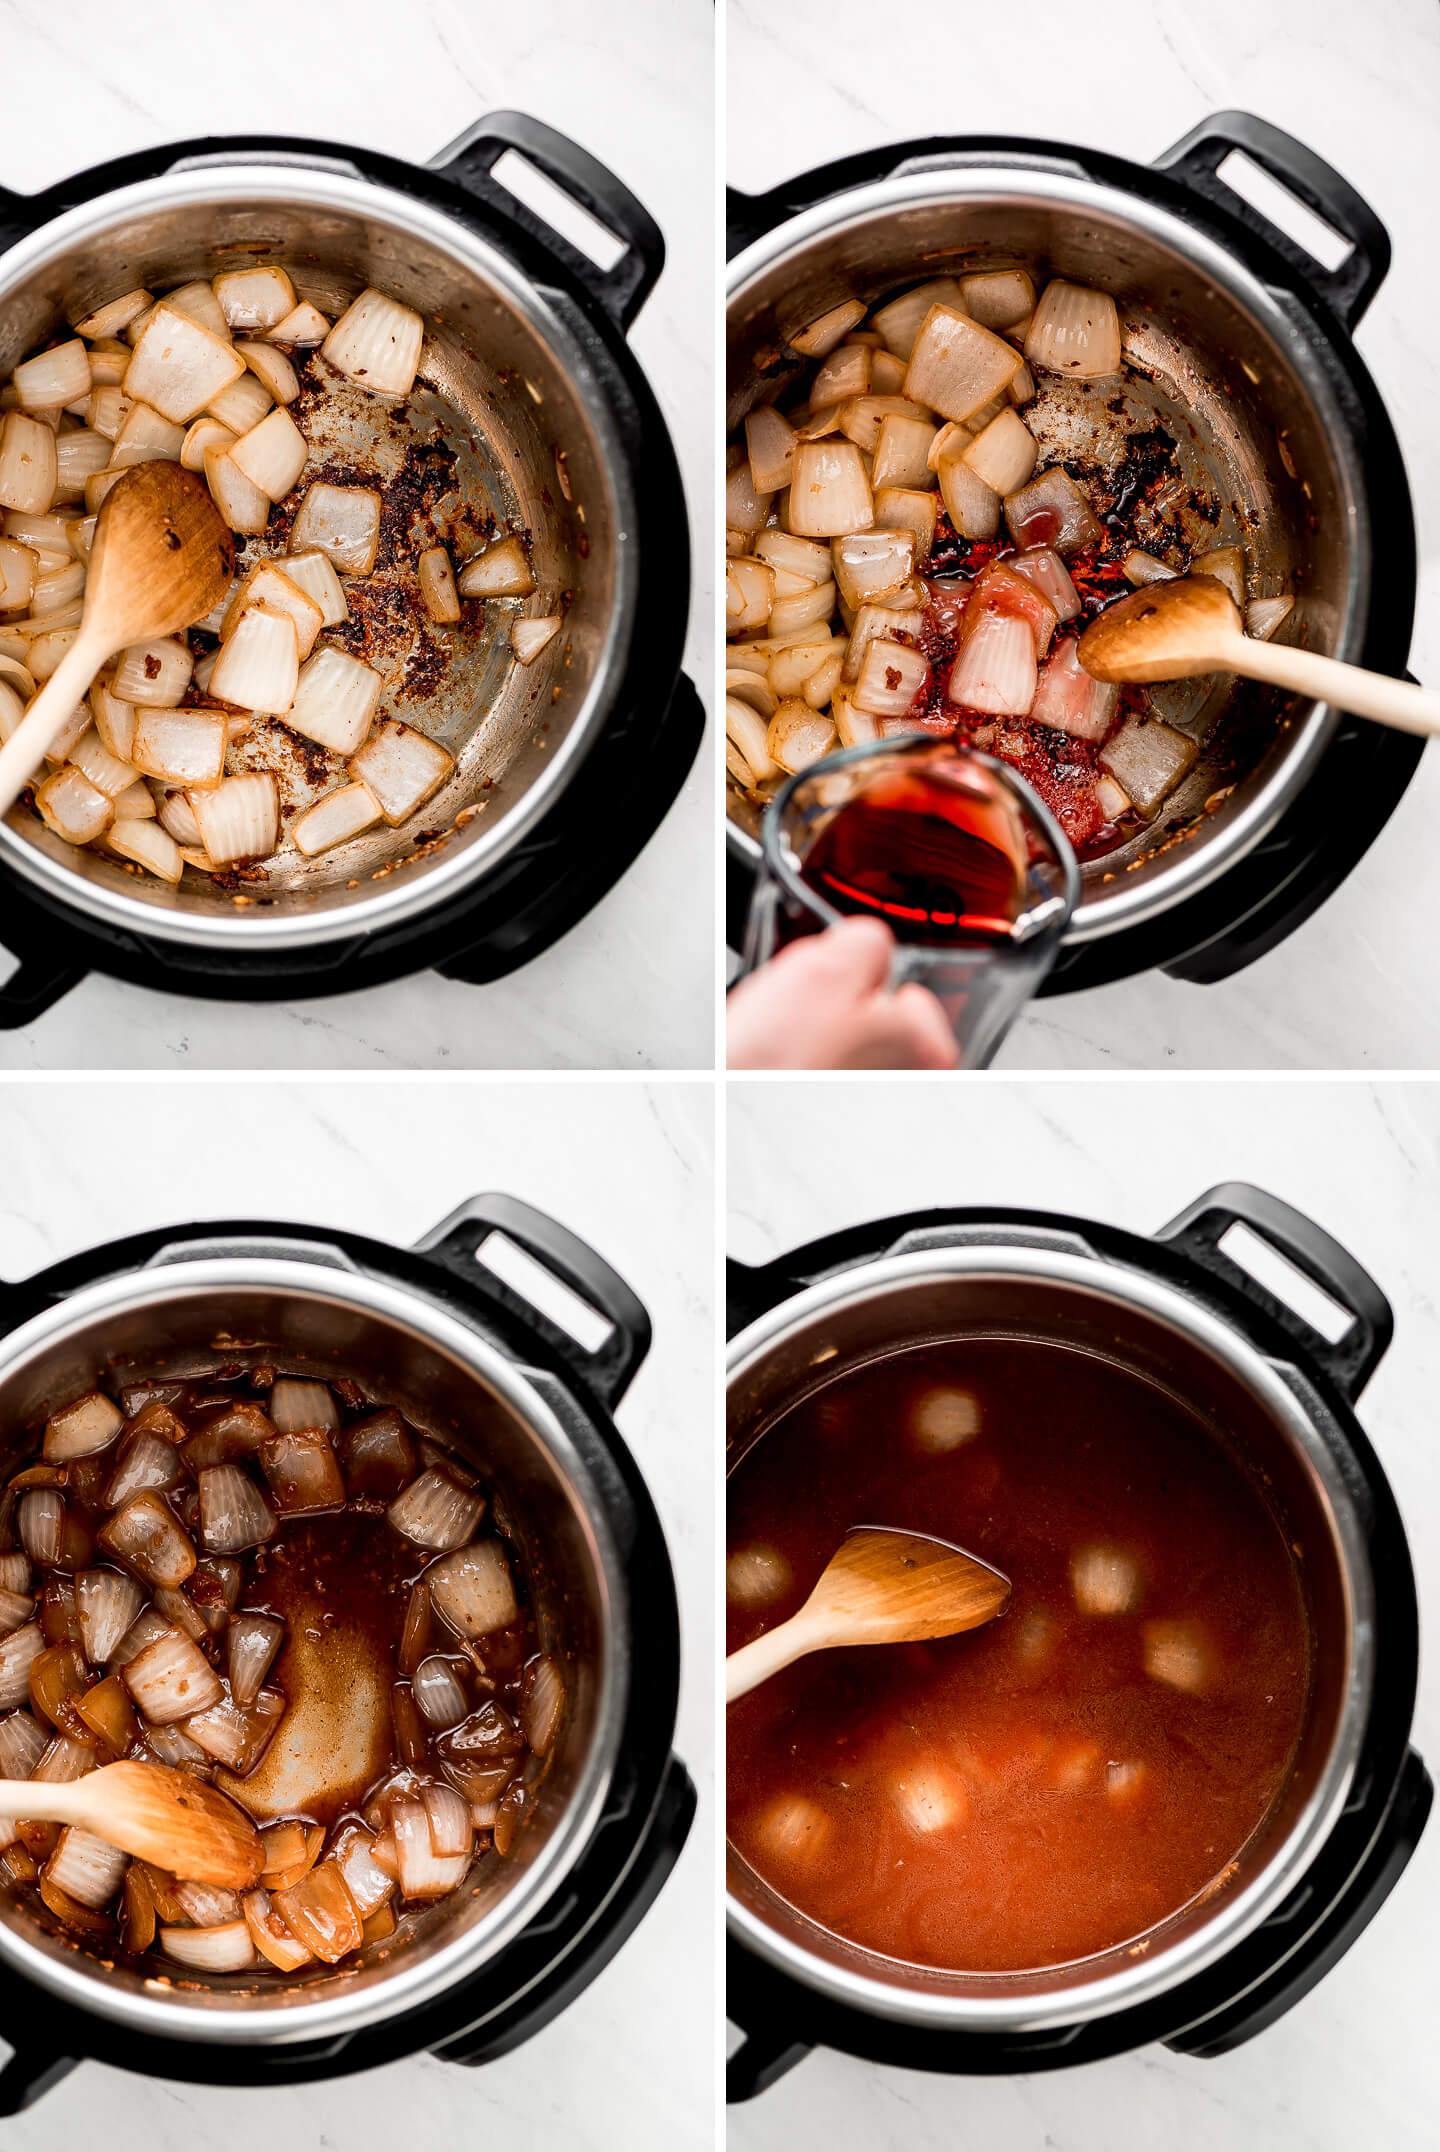 Process shots of cooking onion and deglazing pan with red wine and then adding in broth.